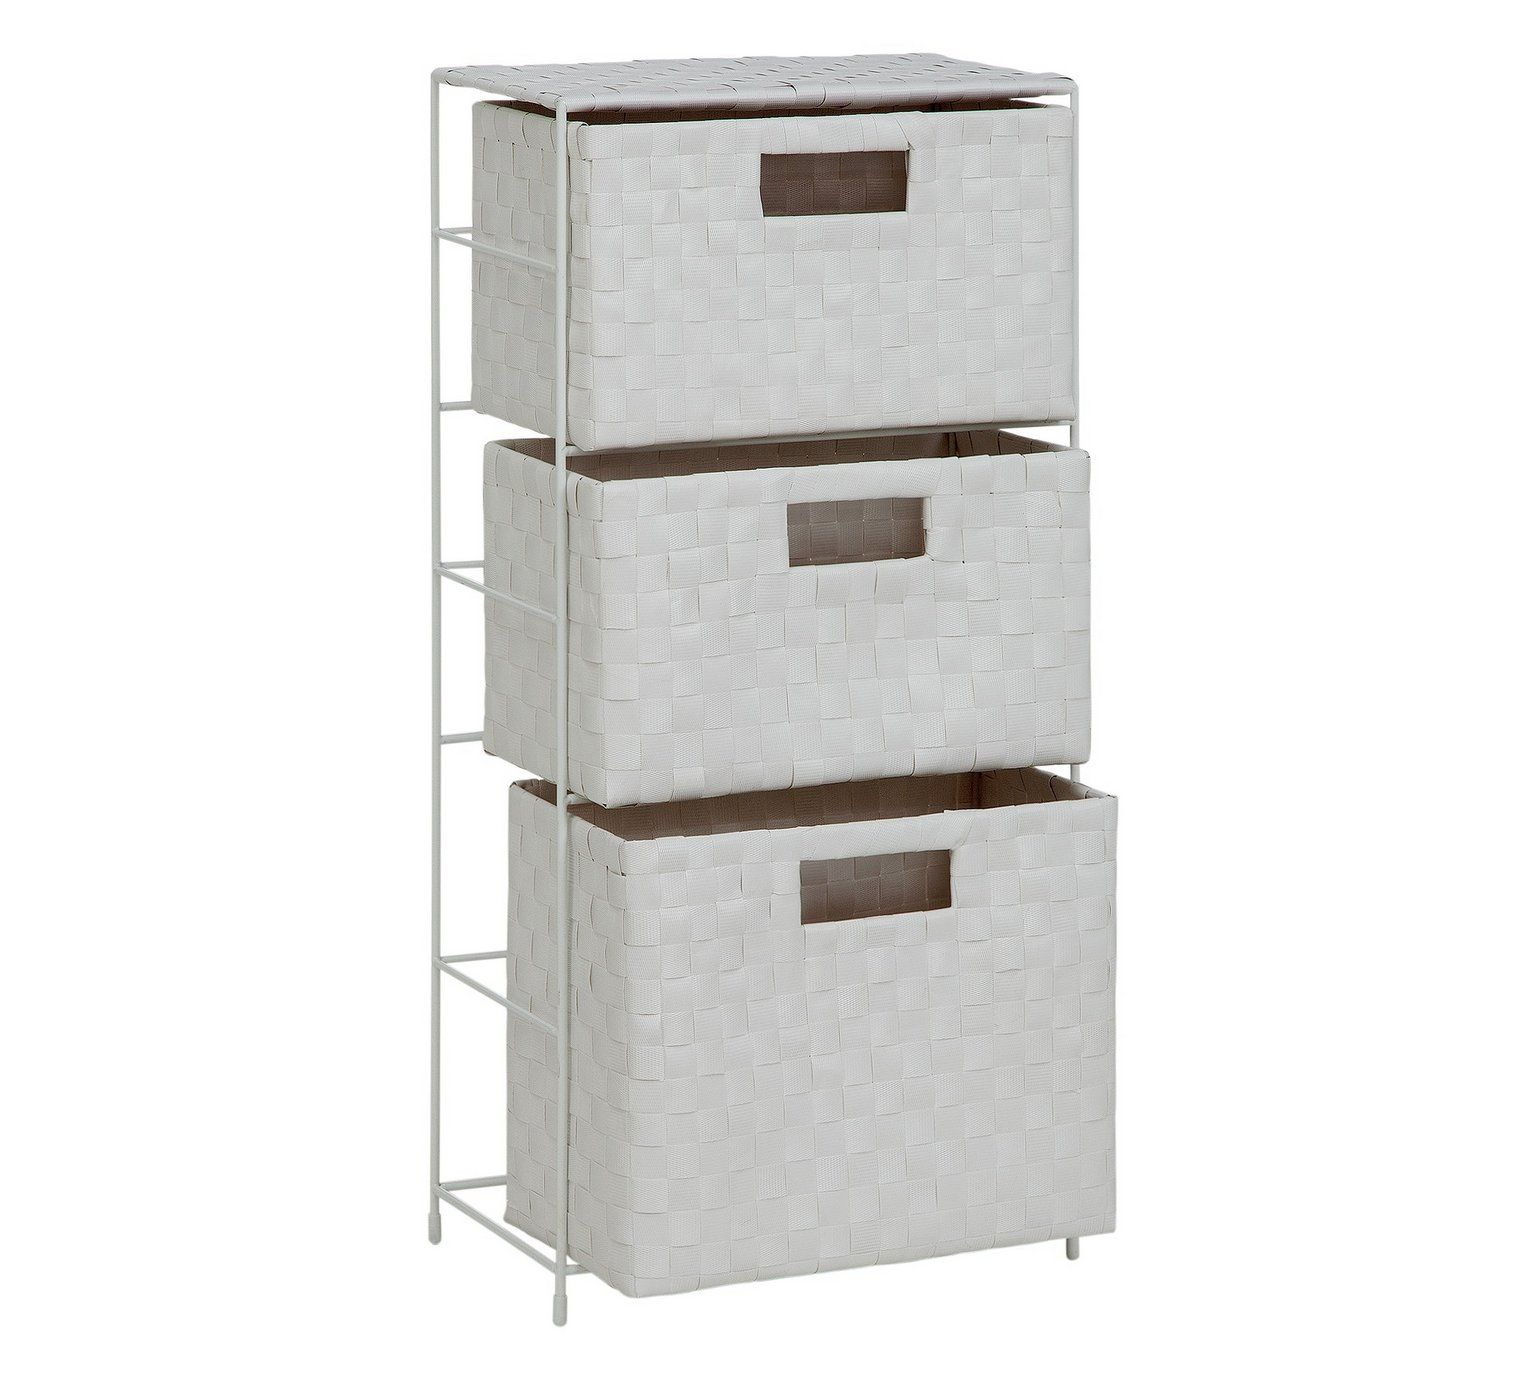 Buy Home Wide 3 Drawer Bathroom Storage Unit At Argos Co Uk Visit Argos Co Uk To Shop Online For Bathro Bathroom Storage Units Bathroom Units Bathroom Storage